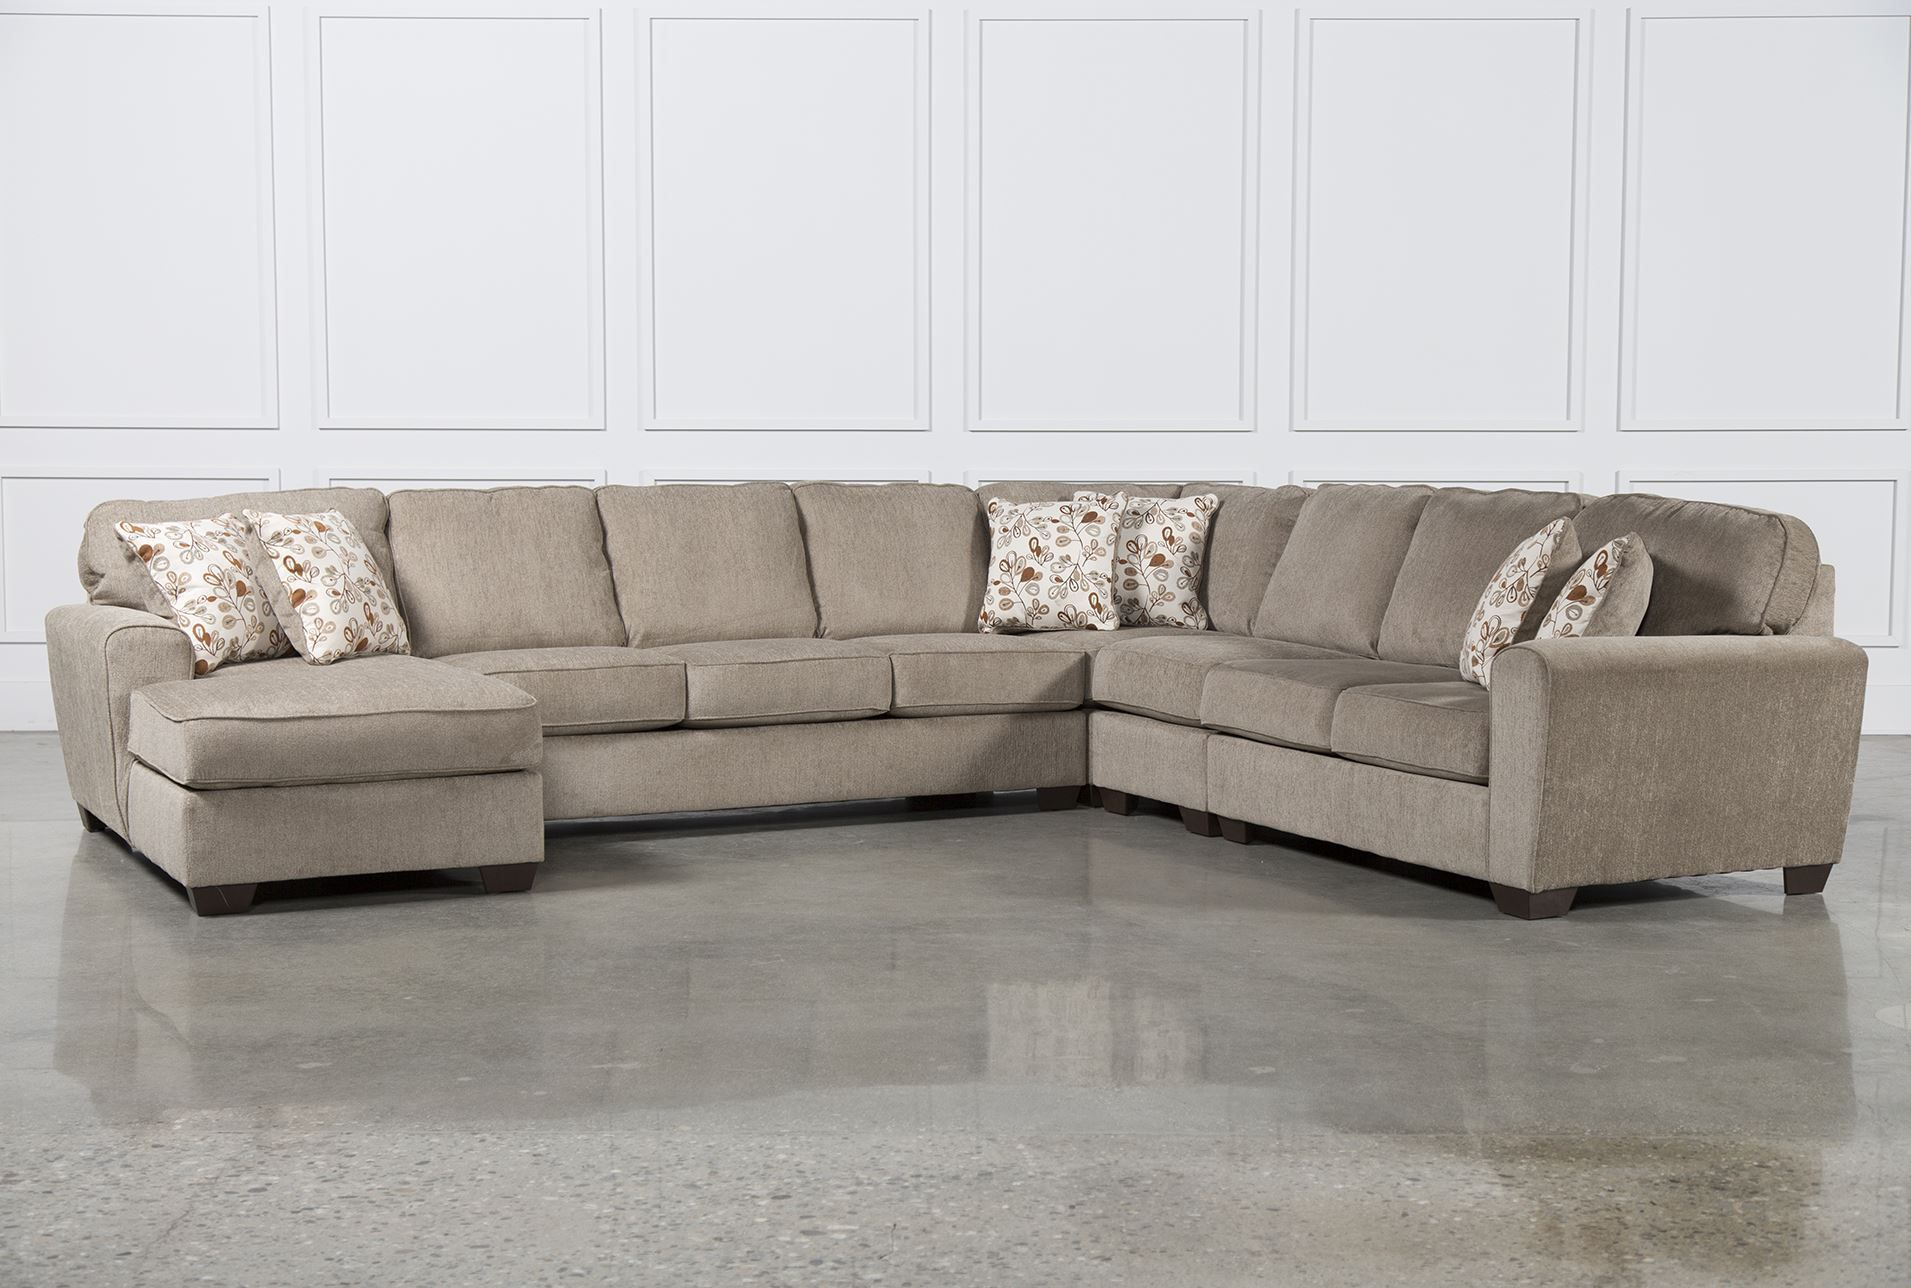 Patola Park 5 Piece Sectional WLaf Chaise Signature For the